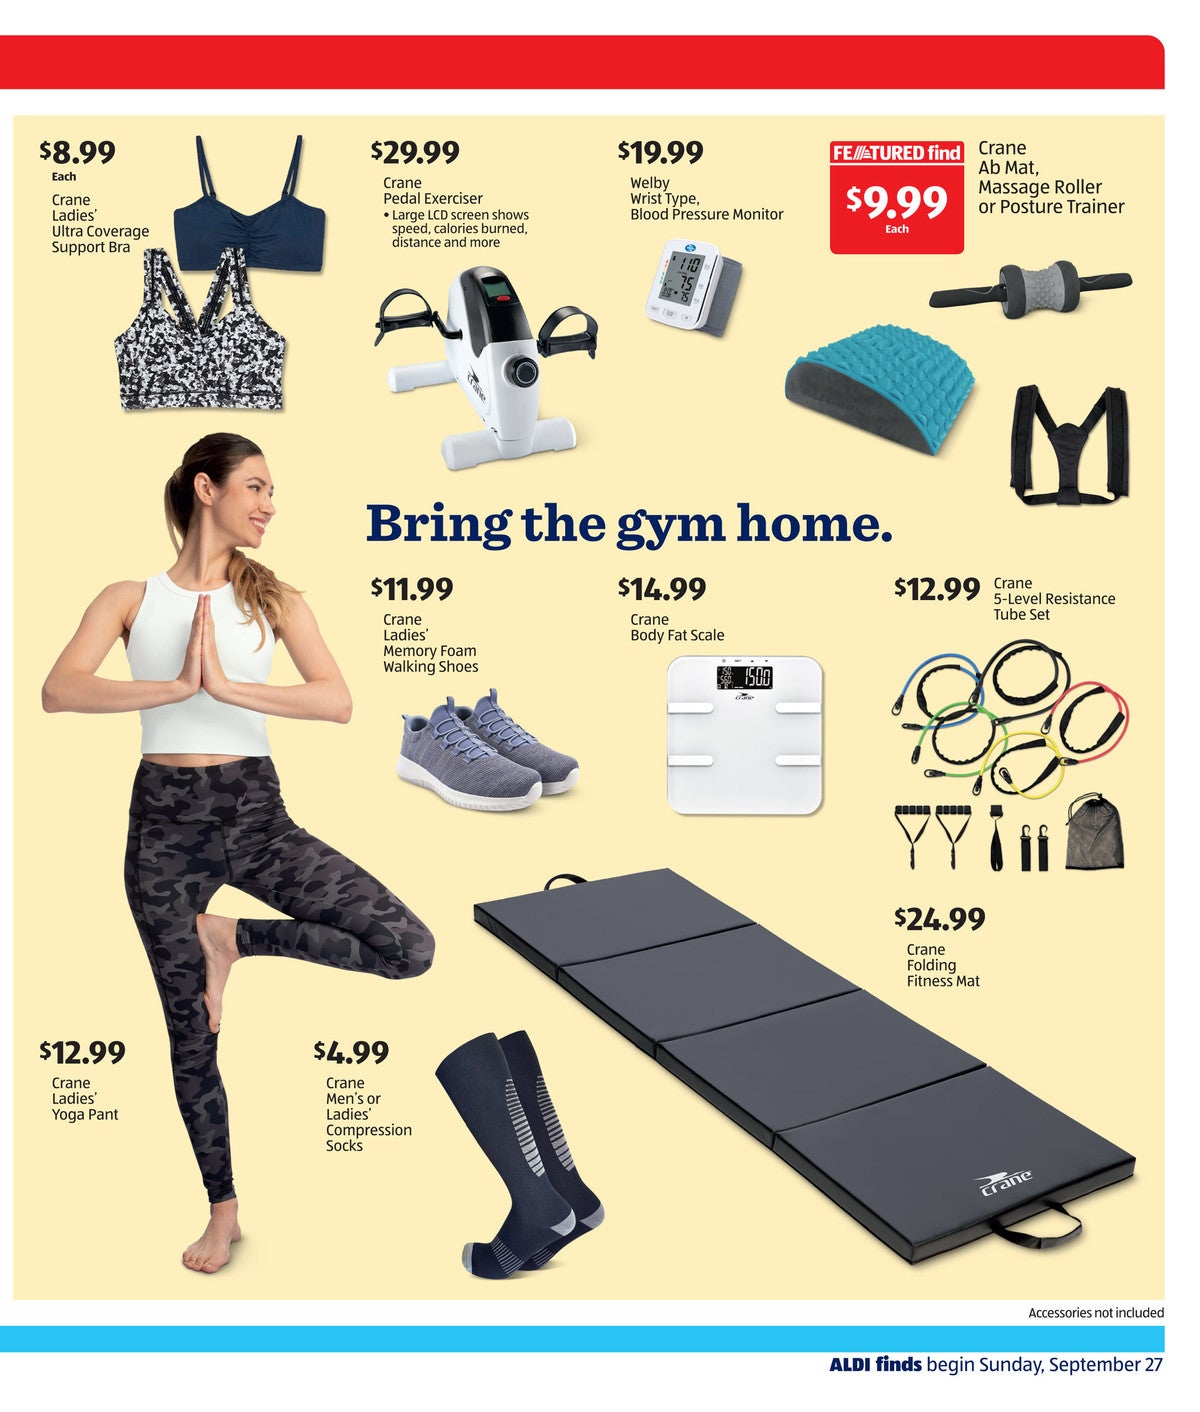 Aldi ad preview for September 30 2020 workout gear